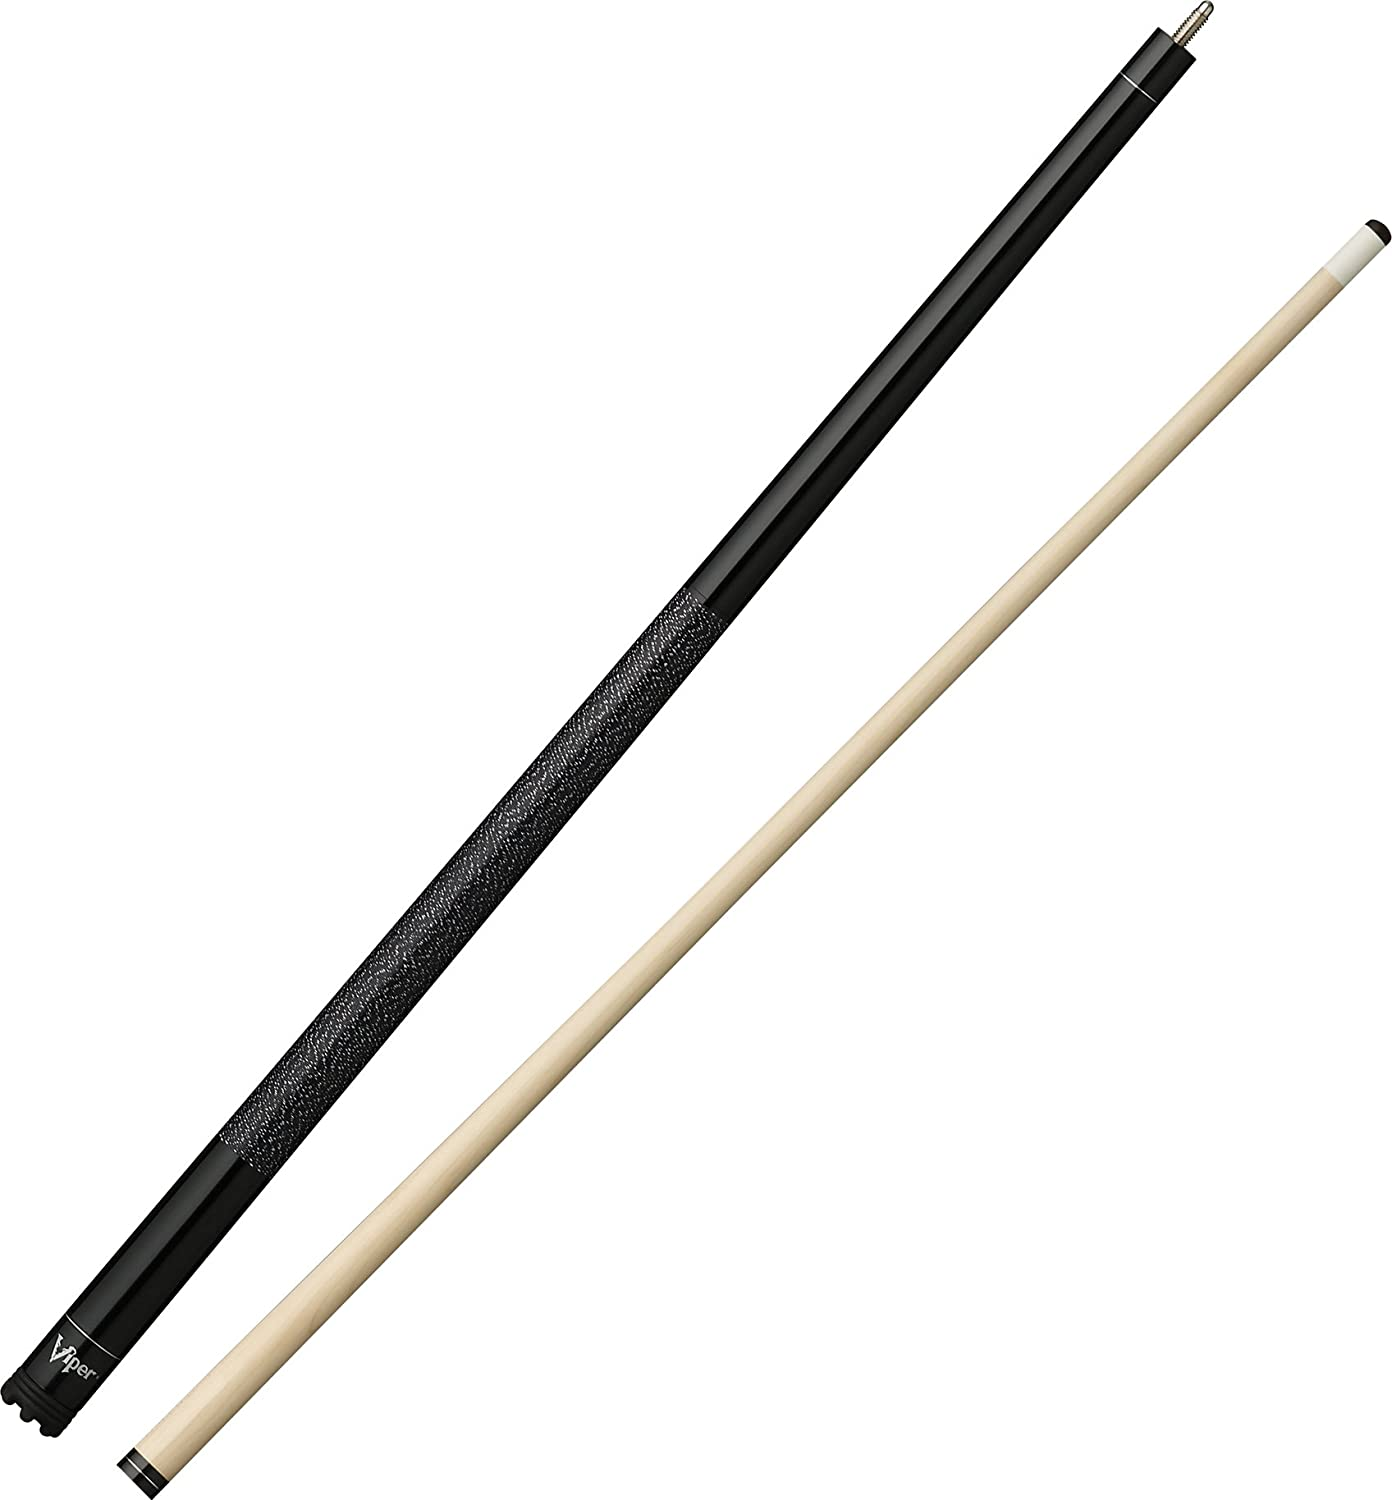 Viper Jump Shot/Break 58 3-Piece Billiard/Pool Cue, Black 05-0503-18-Parent